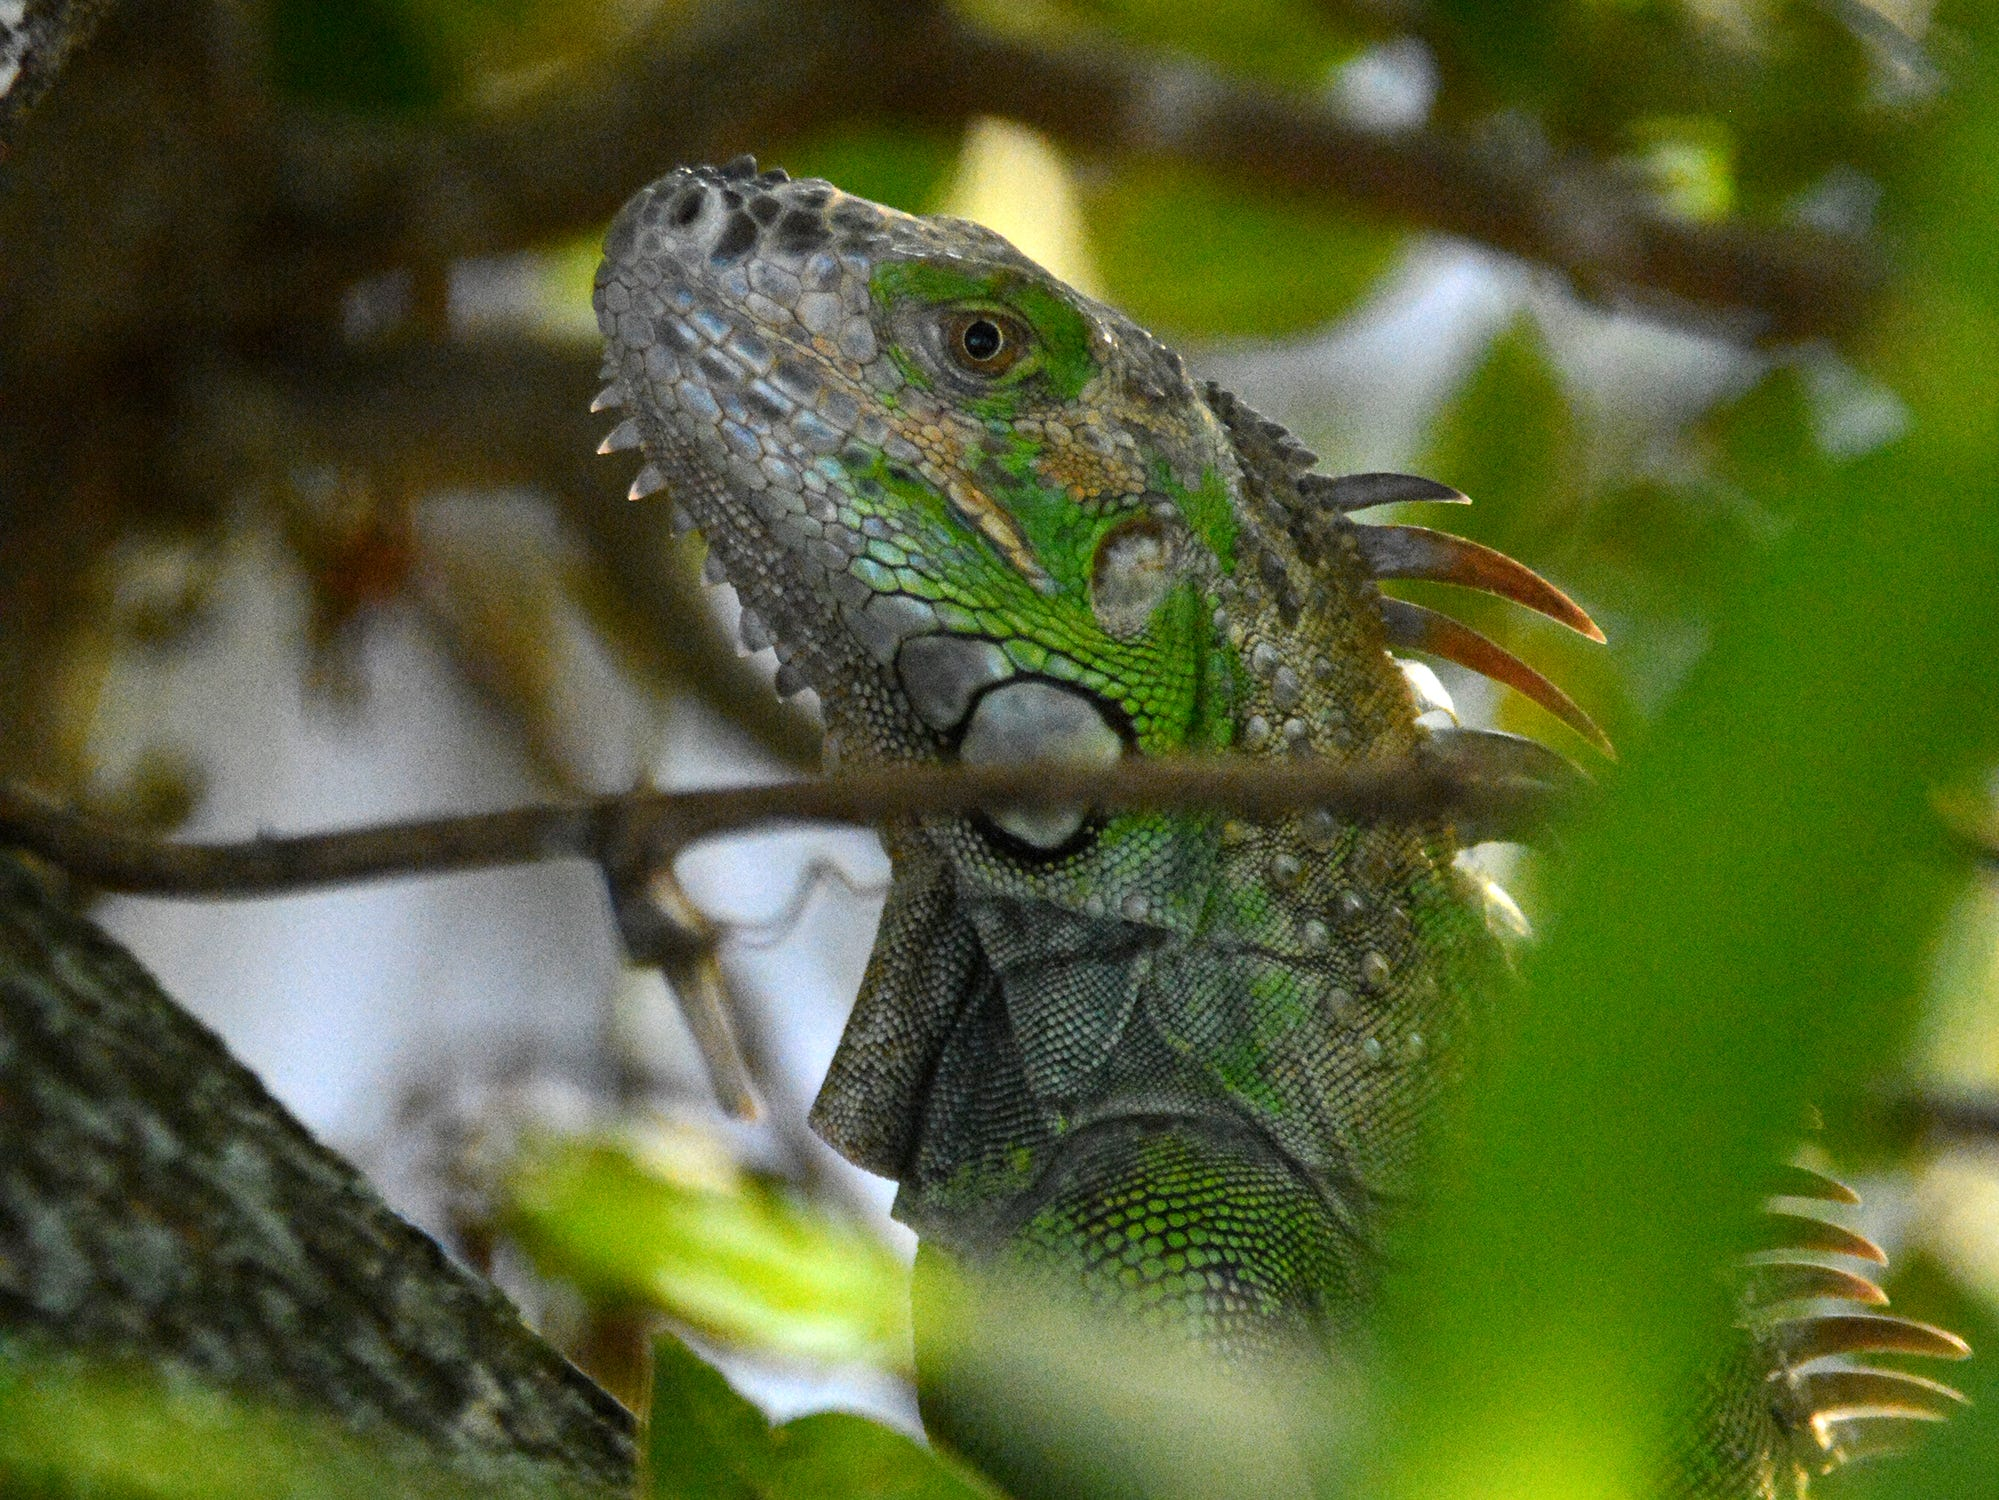 A green iguana perches in a tree at Marco Lake. The City of Marco Island hosted a presentation on invasive iguanas conducted by the Florida Fish and Wildlife Conservation Commission on Wednesday evening in the Biles Community Room.